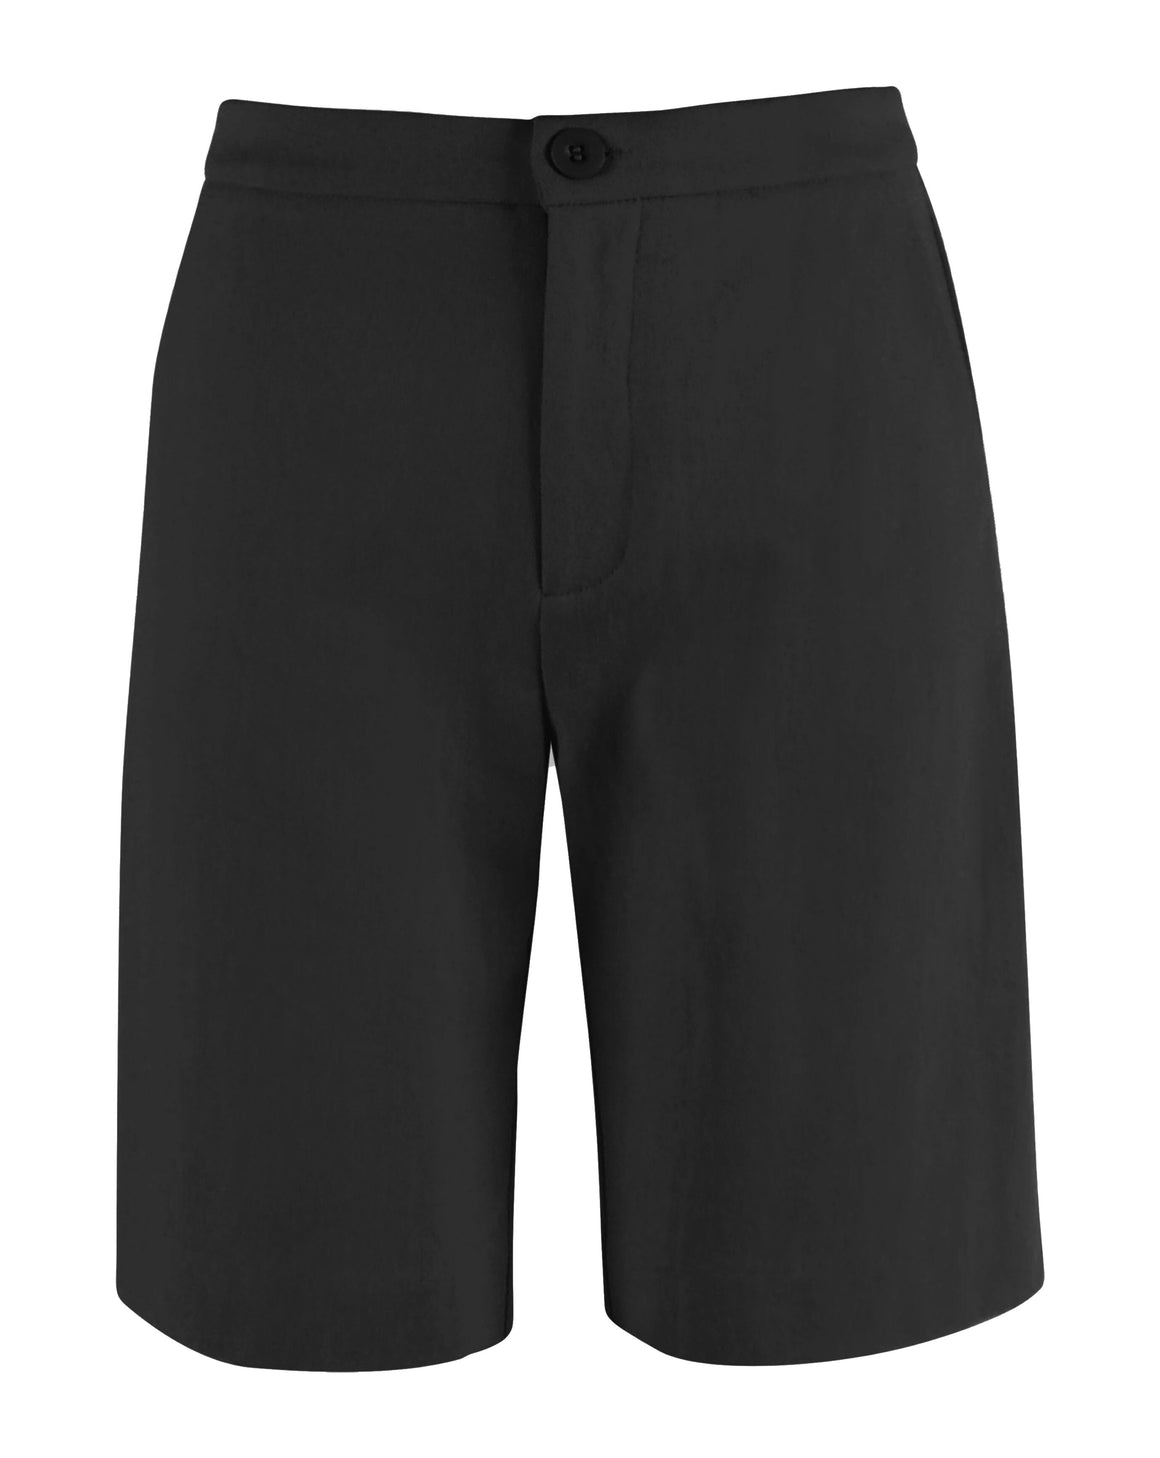 Ketz-ke Gallery Short Black